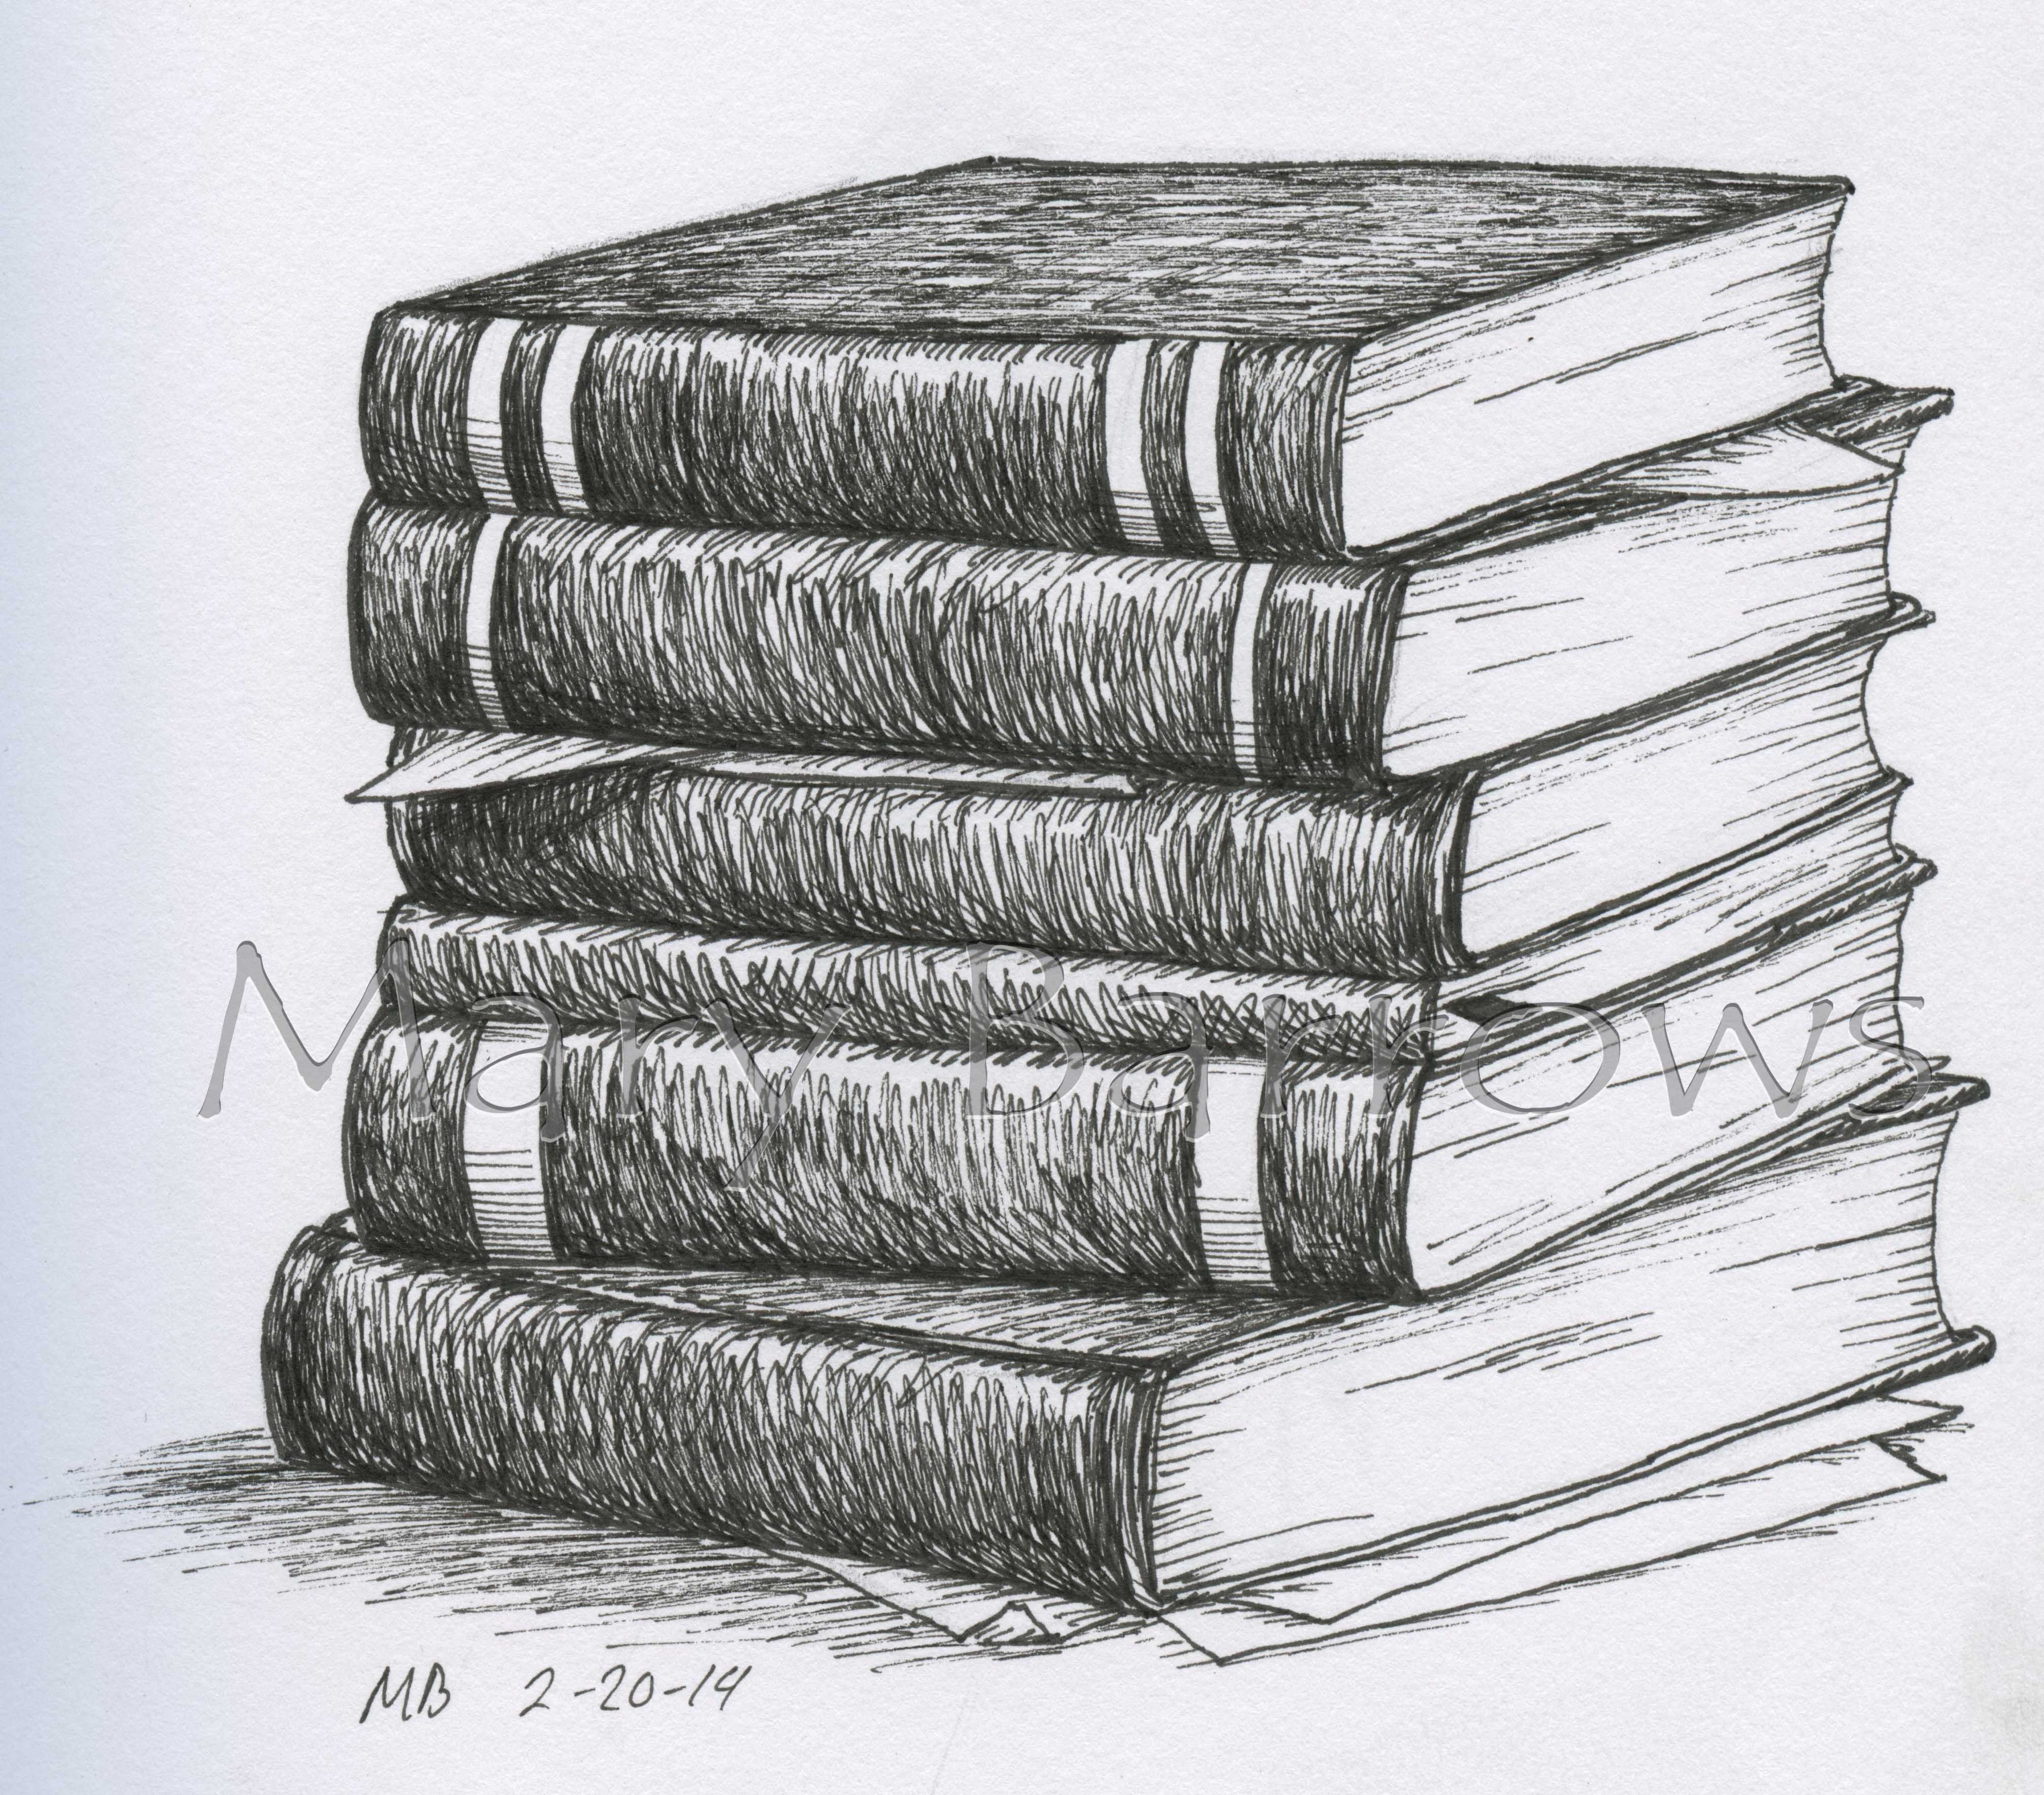 Pile of books drawing google search 100 things drawing for Small drawing ideas